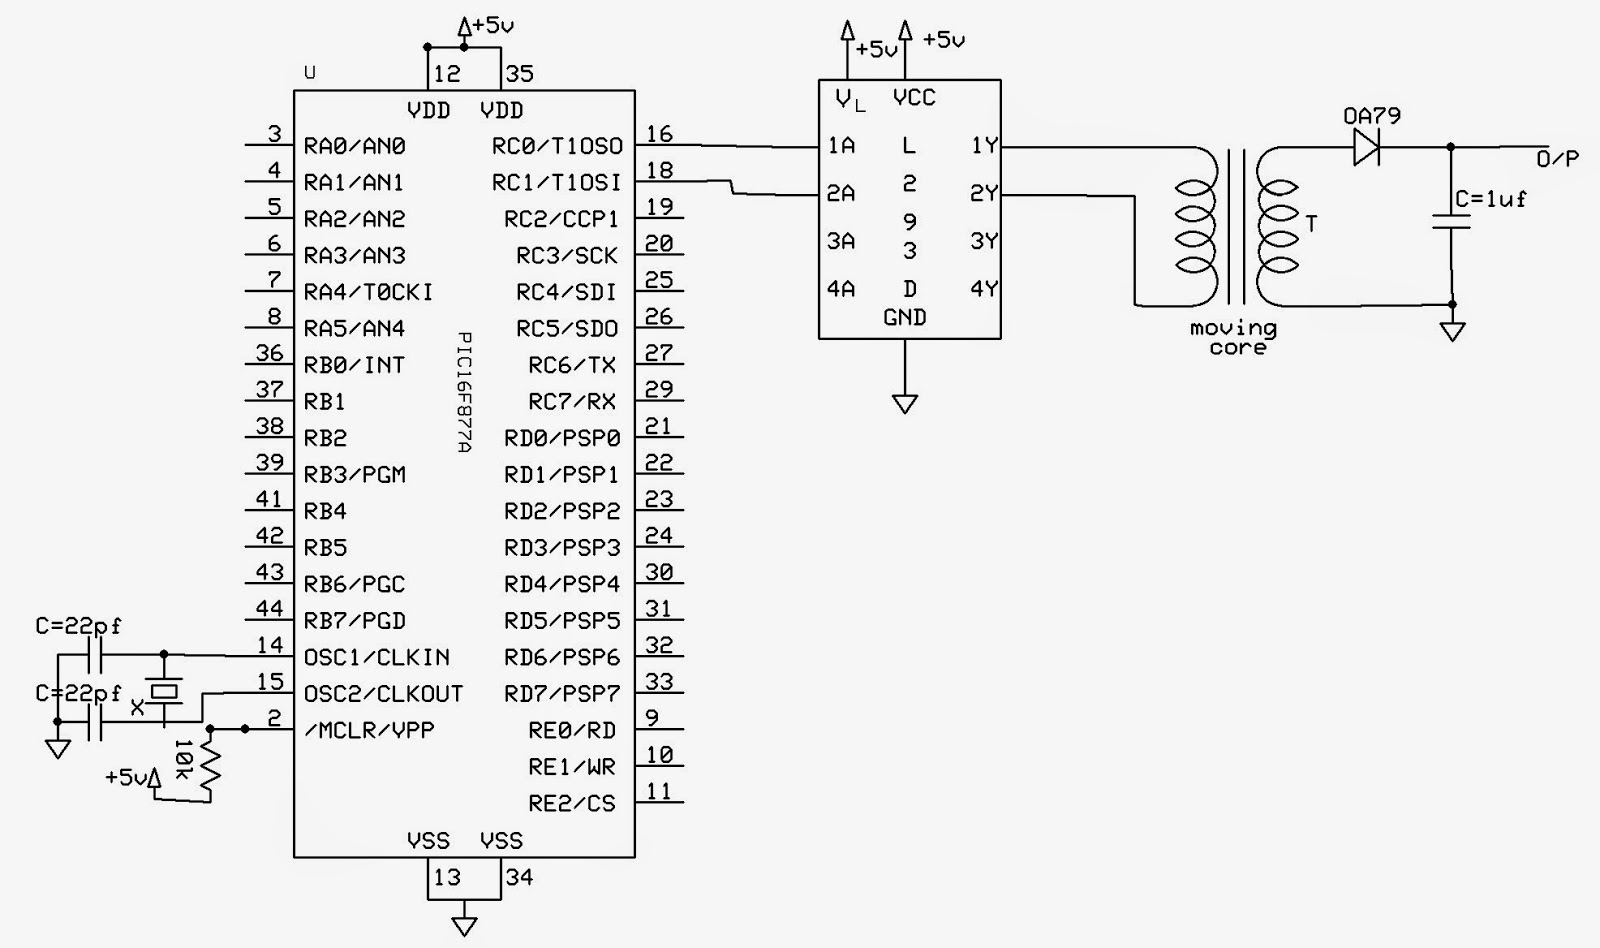 plc to lvdt wiring diagram wiring library proximity sensor wiring diagram lvdt rs232 wiring diagram [ 1600 x 948 Pixel ]